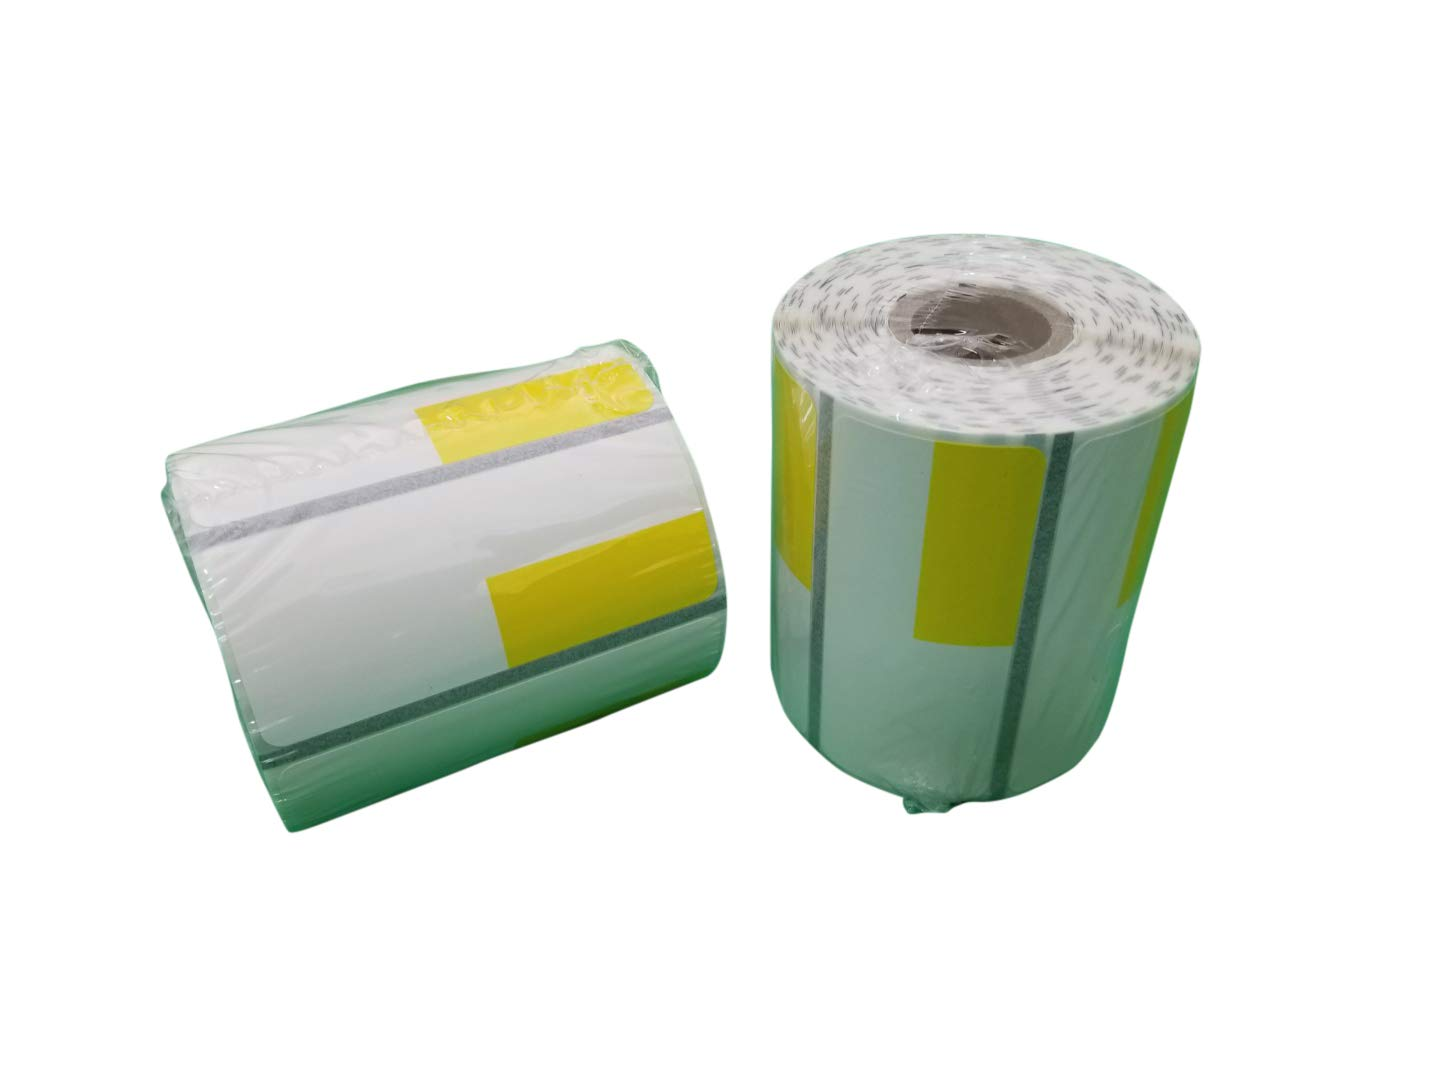 Zebra 2 5/8 x 1 1/8(2.25 x 1.25) inch Direct Thermal Polypropylene Labels 4000D, Yellow(Left Top) Price tag, Direct Thermal Label, 500 Per Roll, 24 Rolls/Box by VisionTechShop (Image #3)